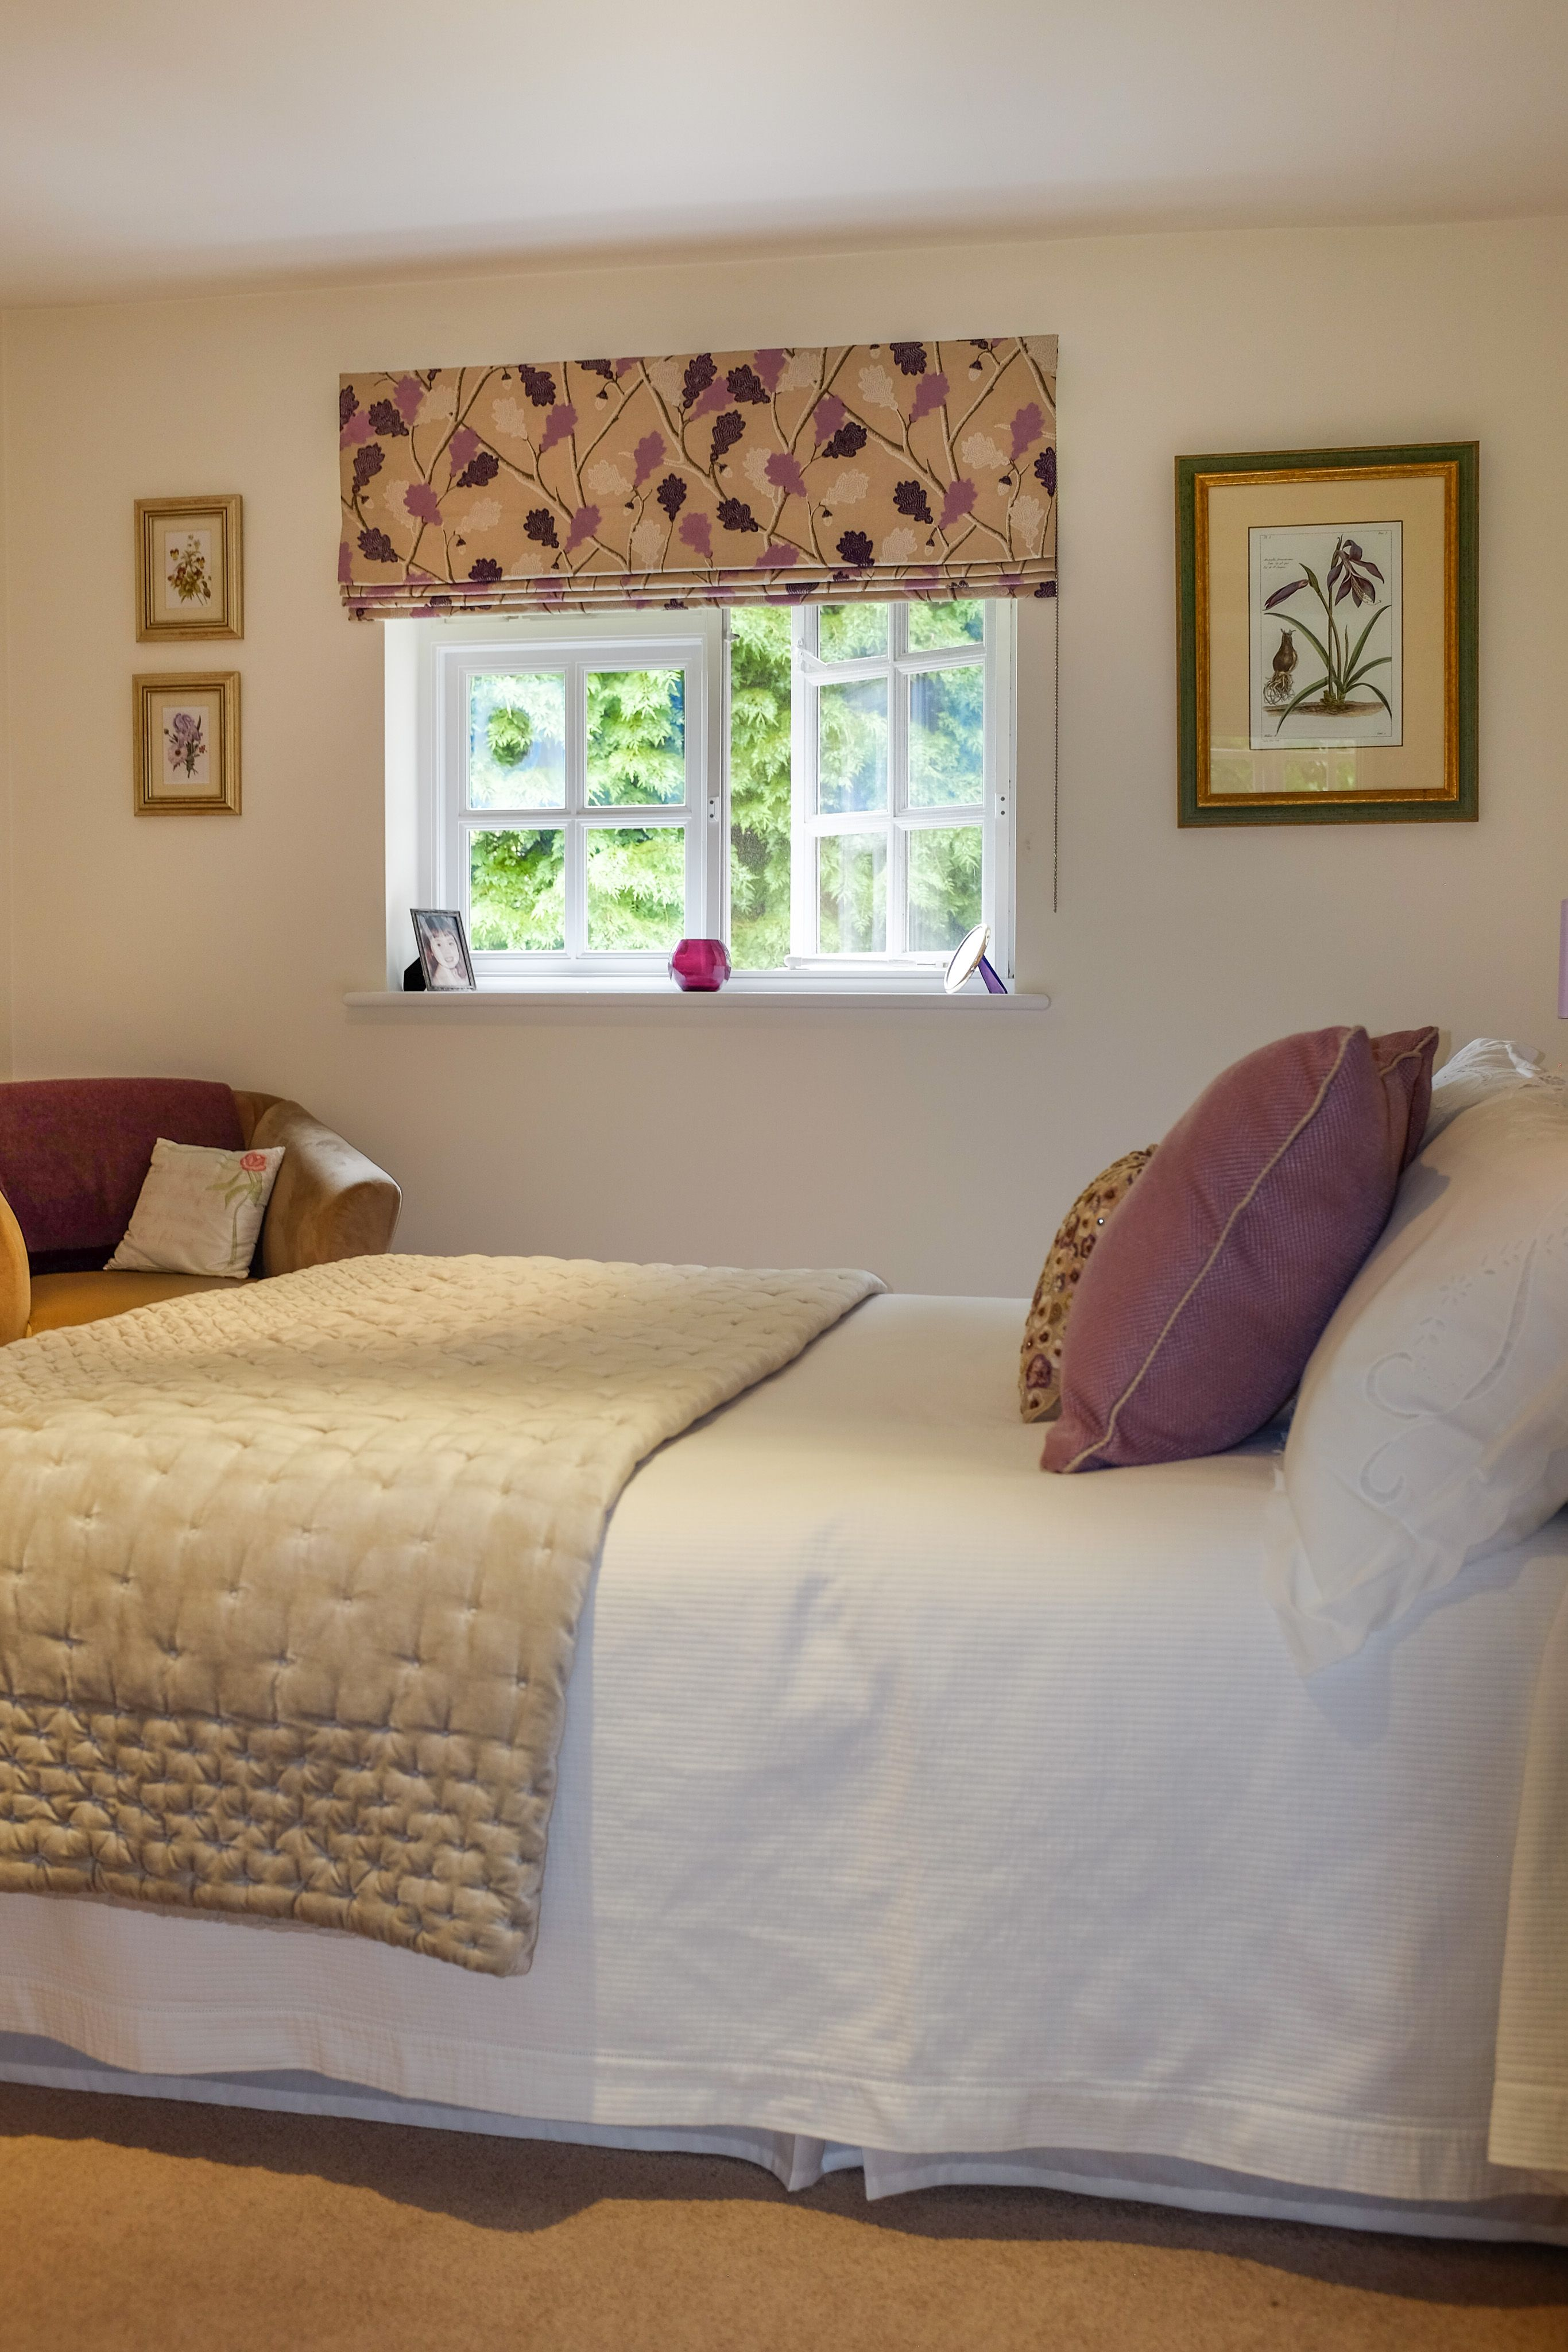 A Roman Blind Installed Across The Window Recess With A Floral